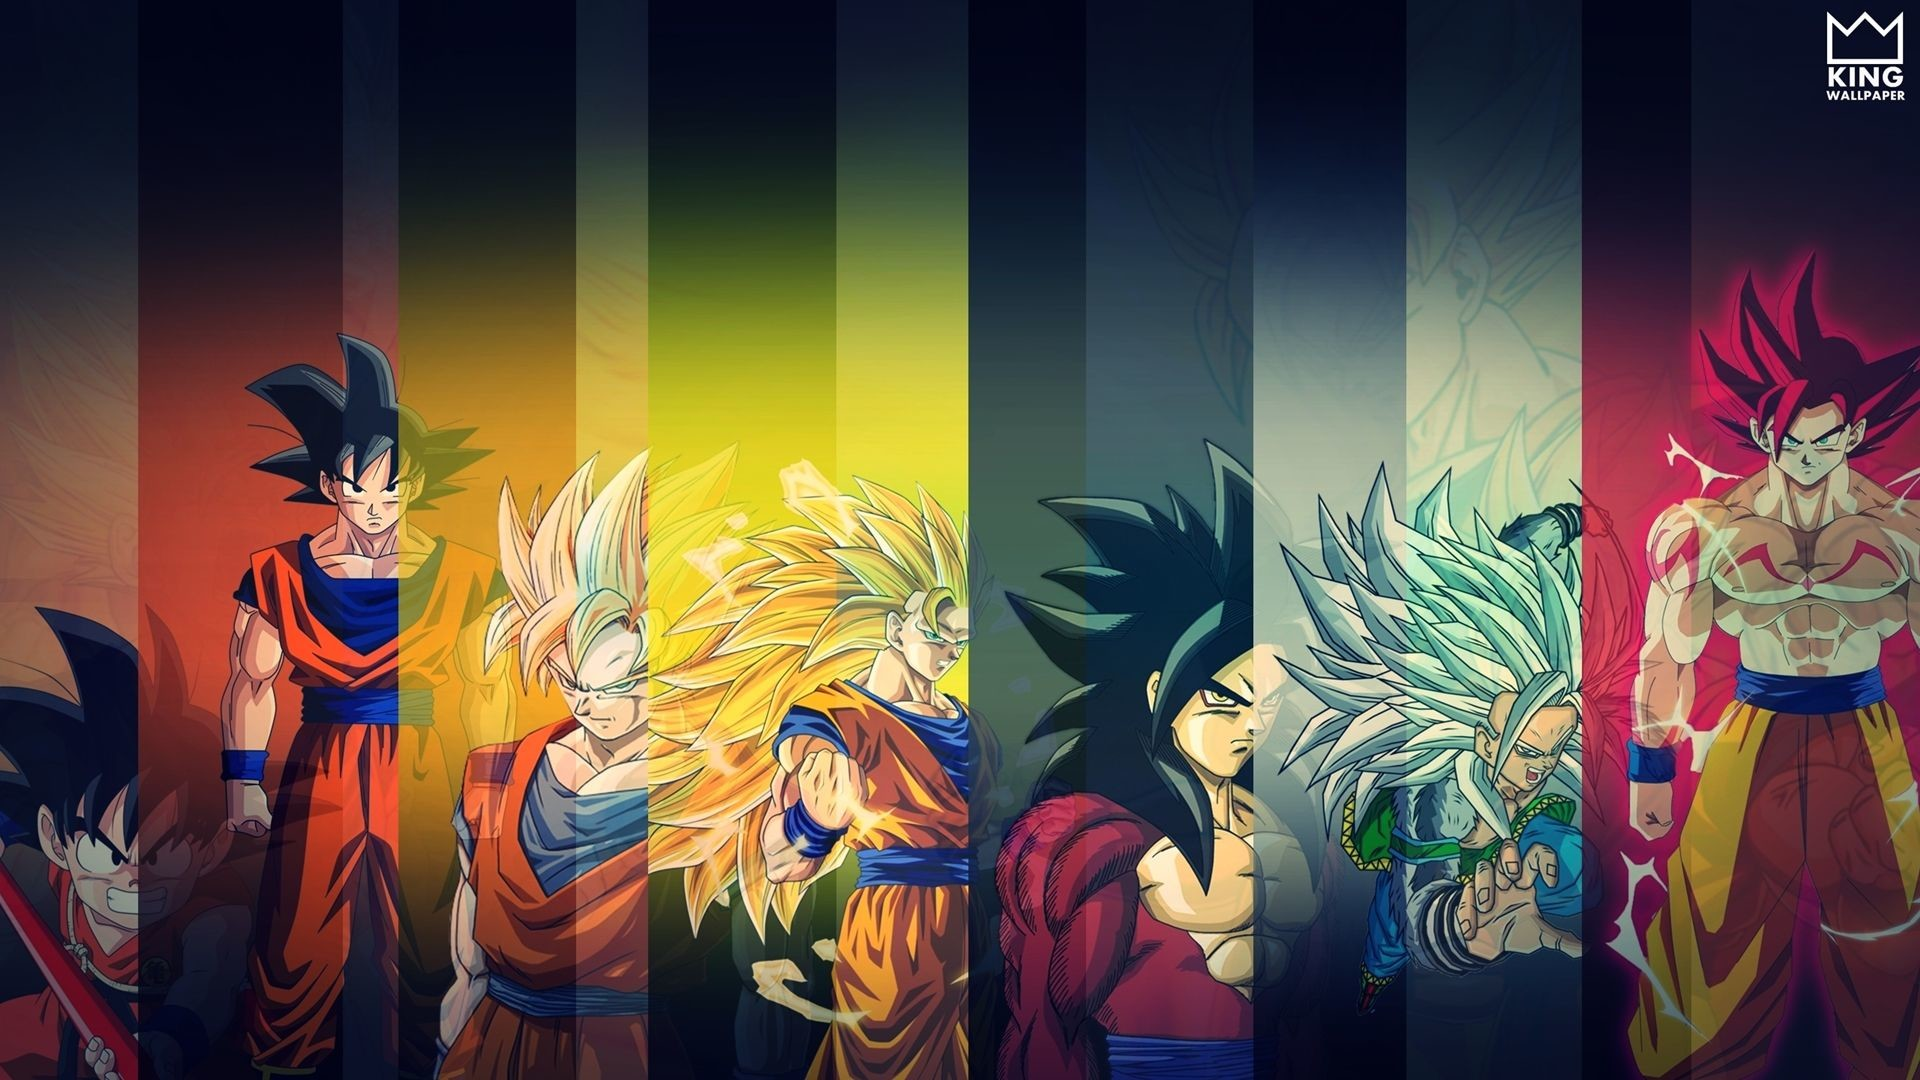 1920x1080 40 Best Goku Wallpaper hd for PC: Dragon Ball Z